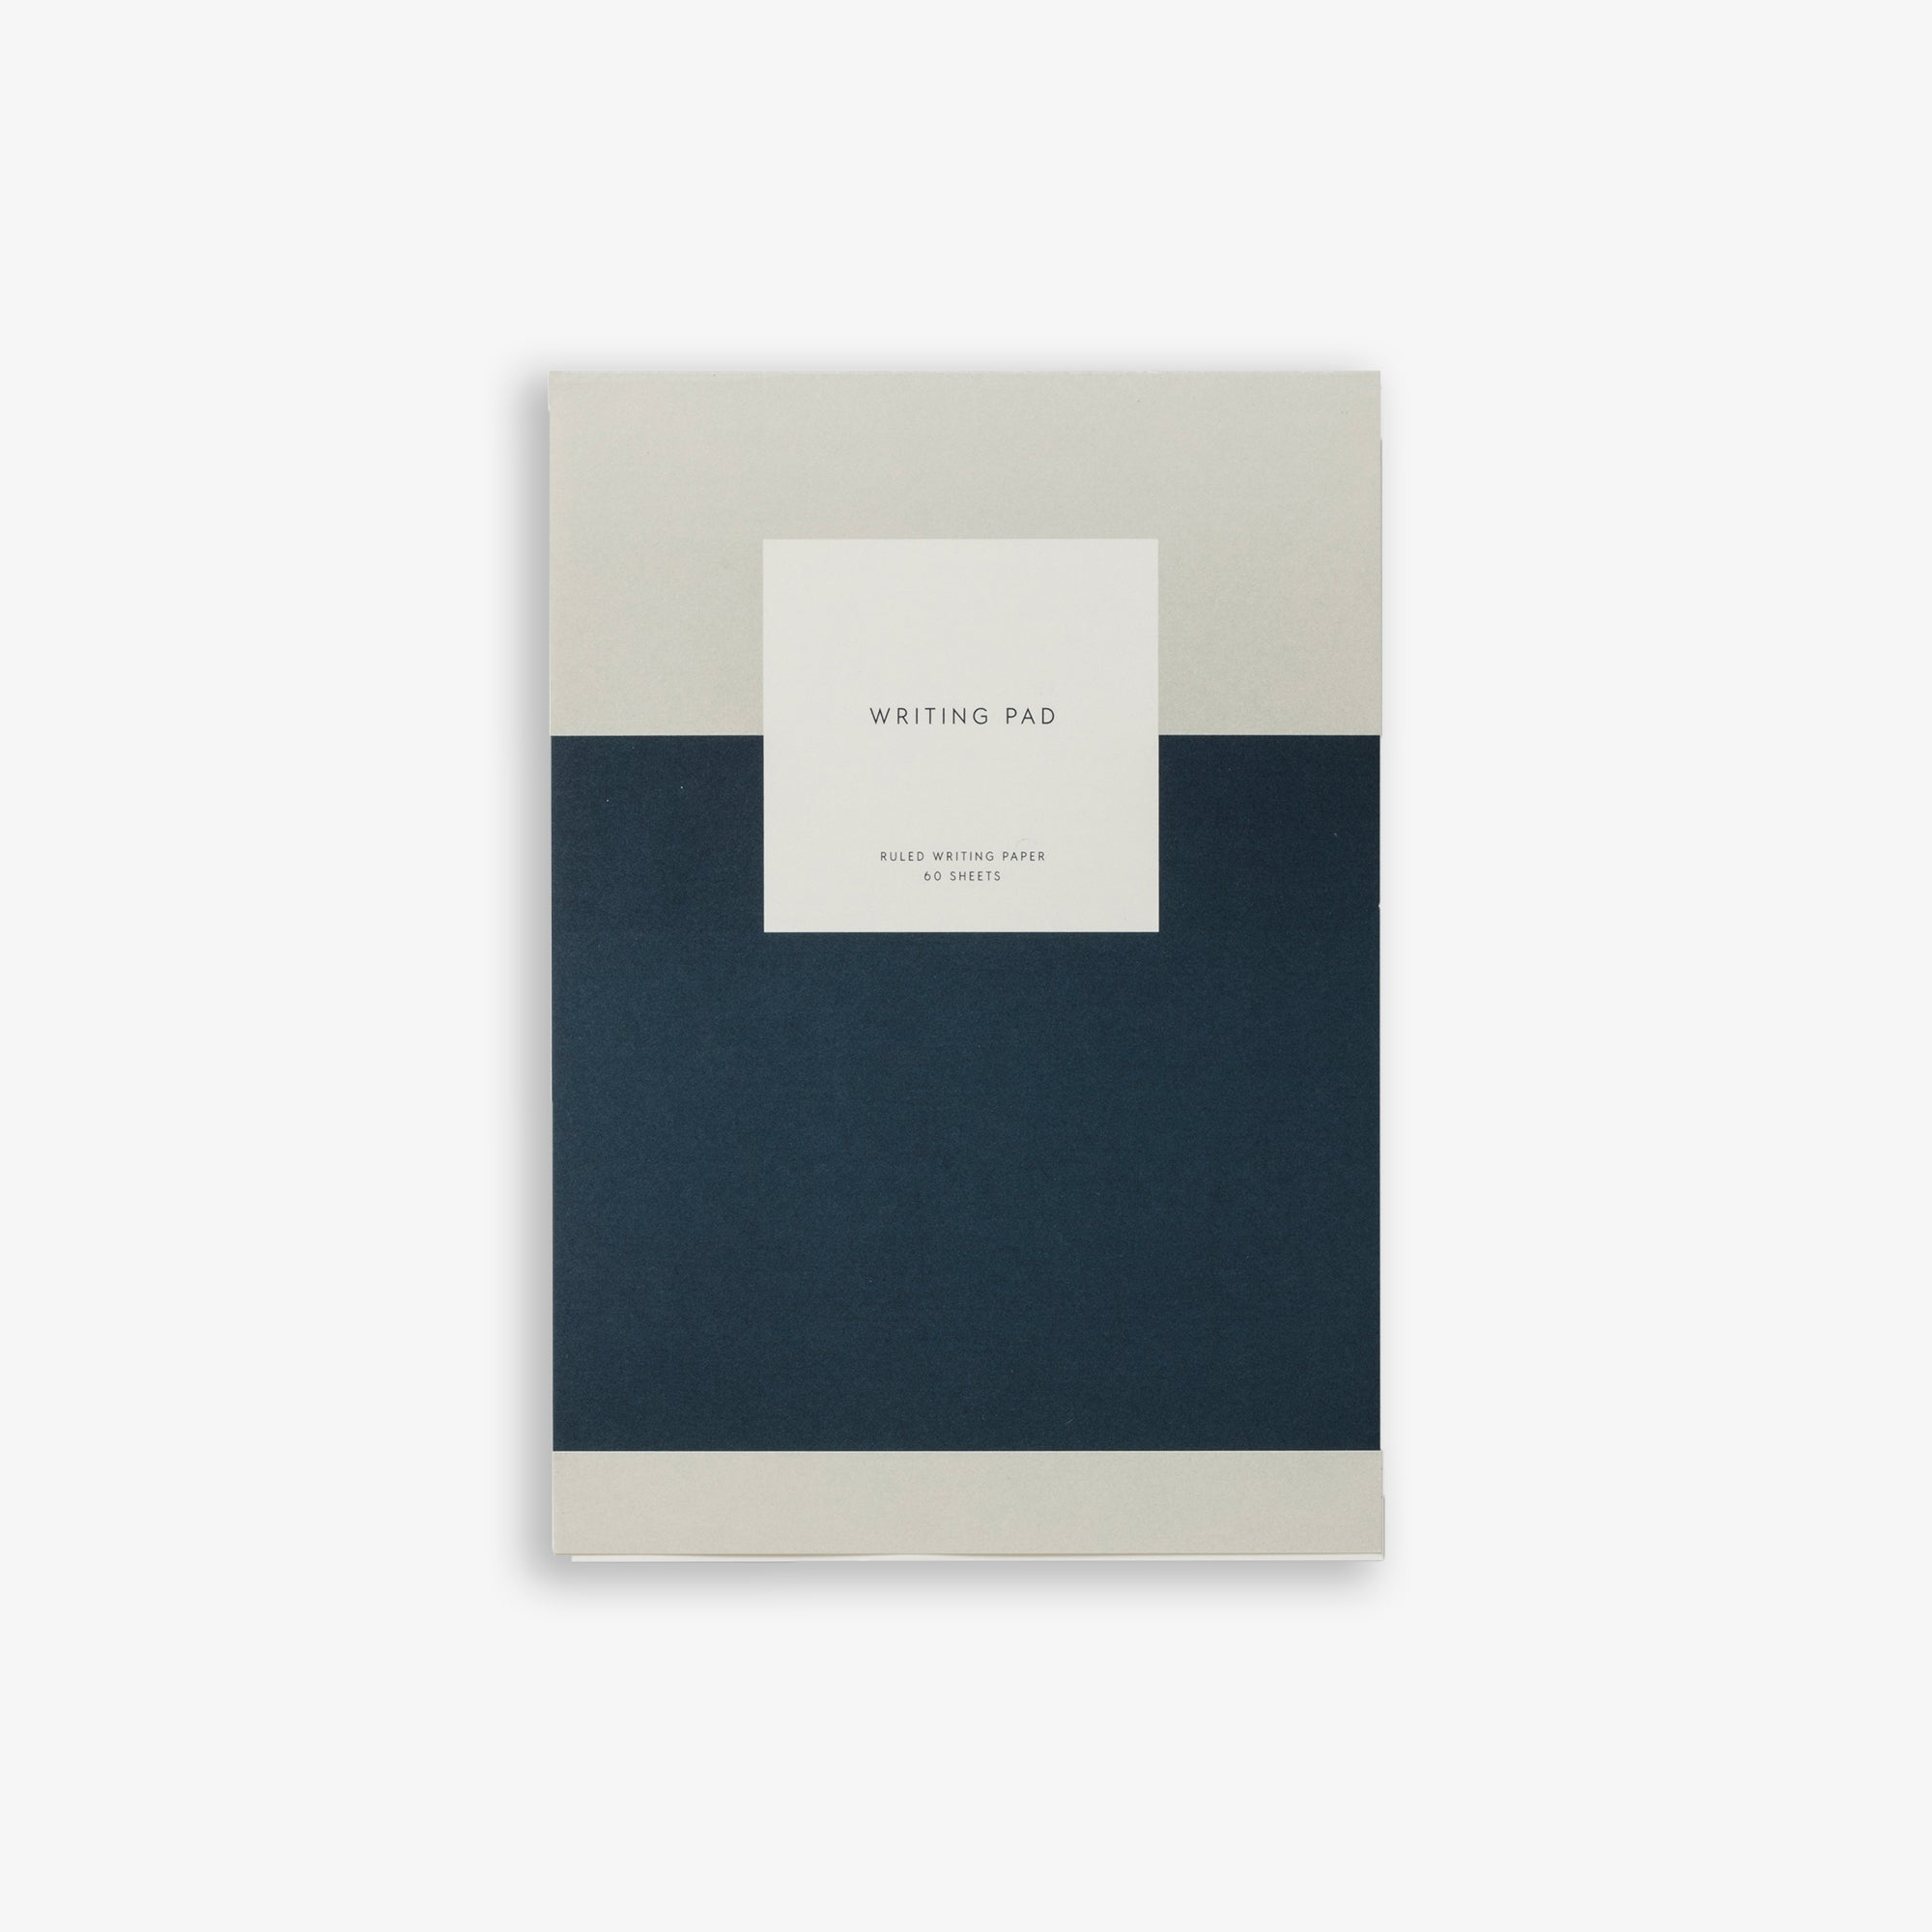 NOTEPAD WITH COVER / WRITING PAD - NAVY